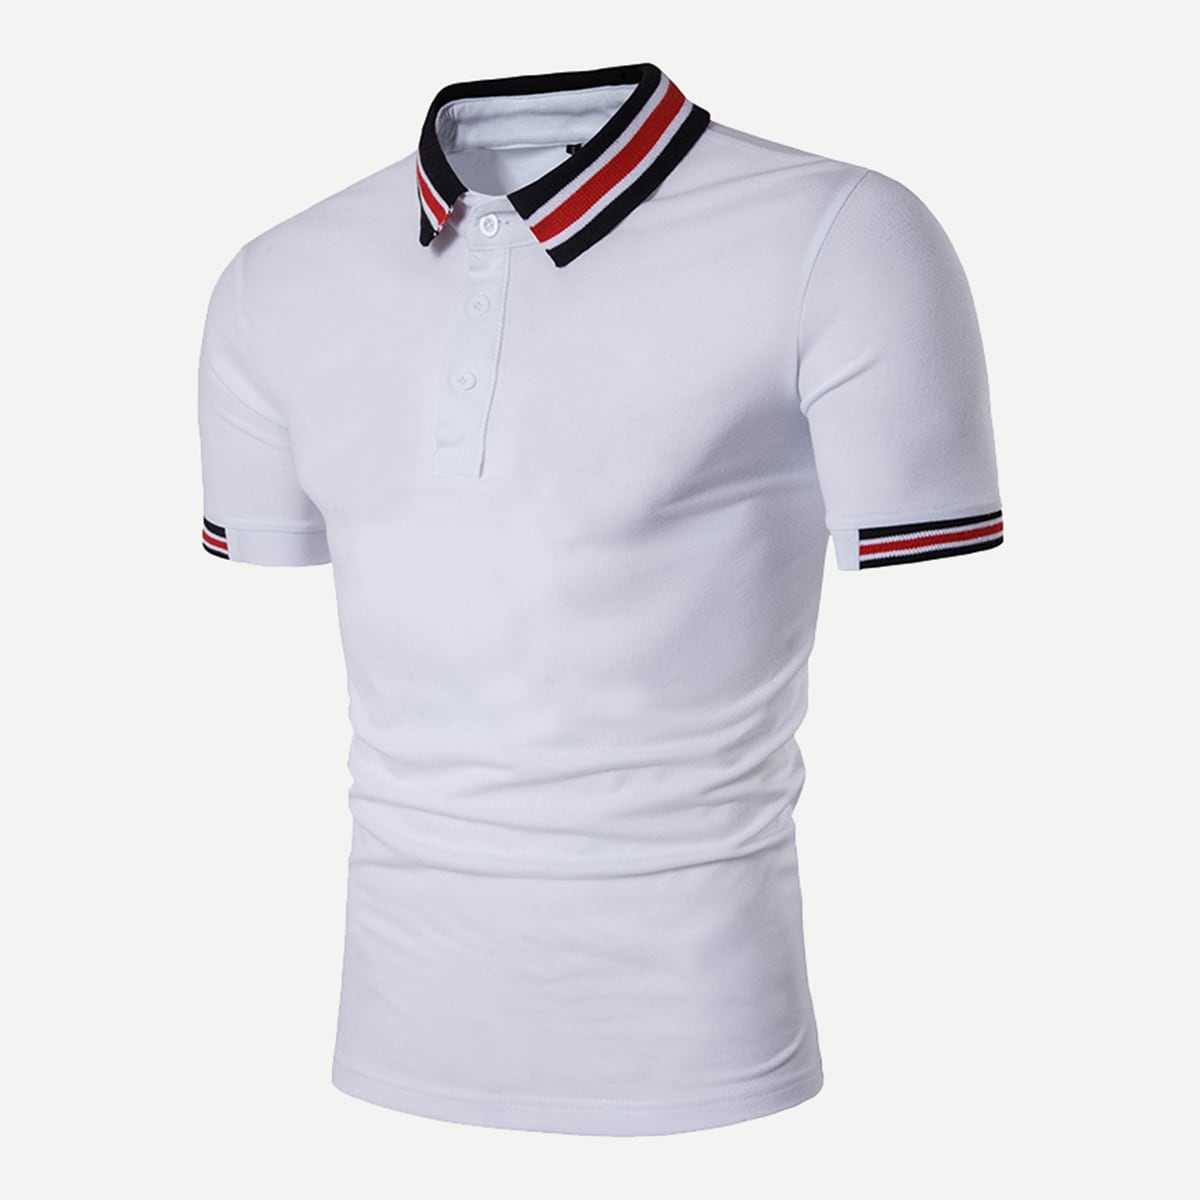 Guys Striped Detail Polo Shirt in White by ROMWE on GOOFASH